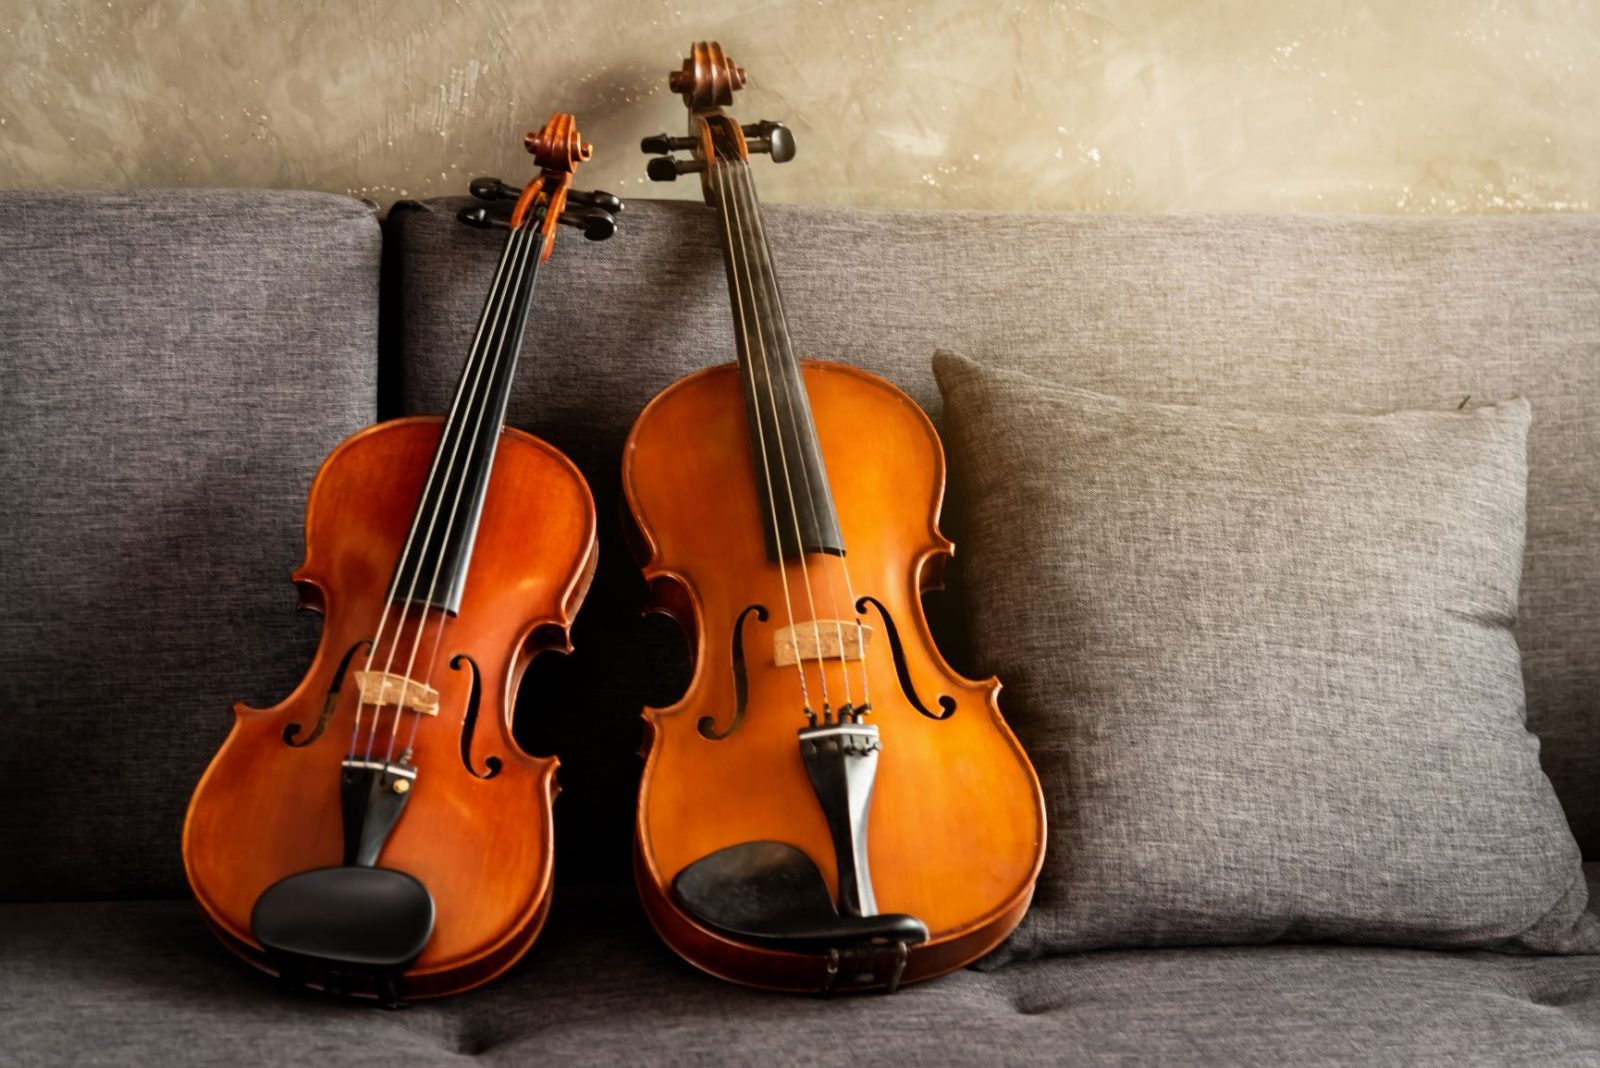 Difference Between Viola and Violin